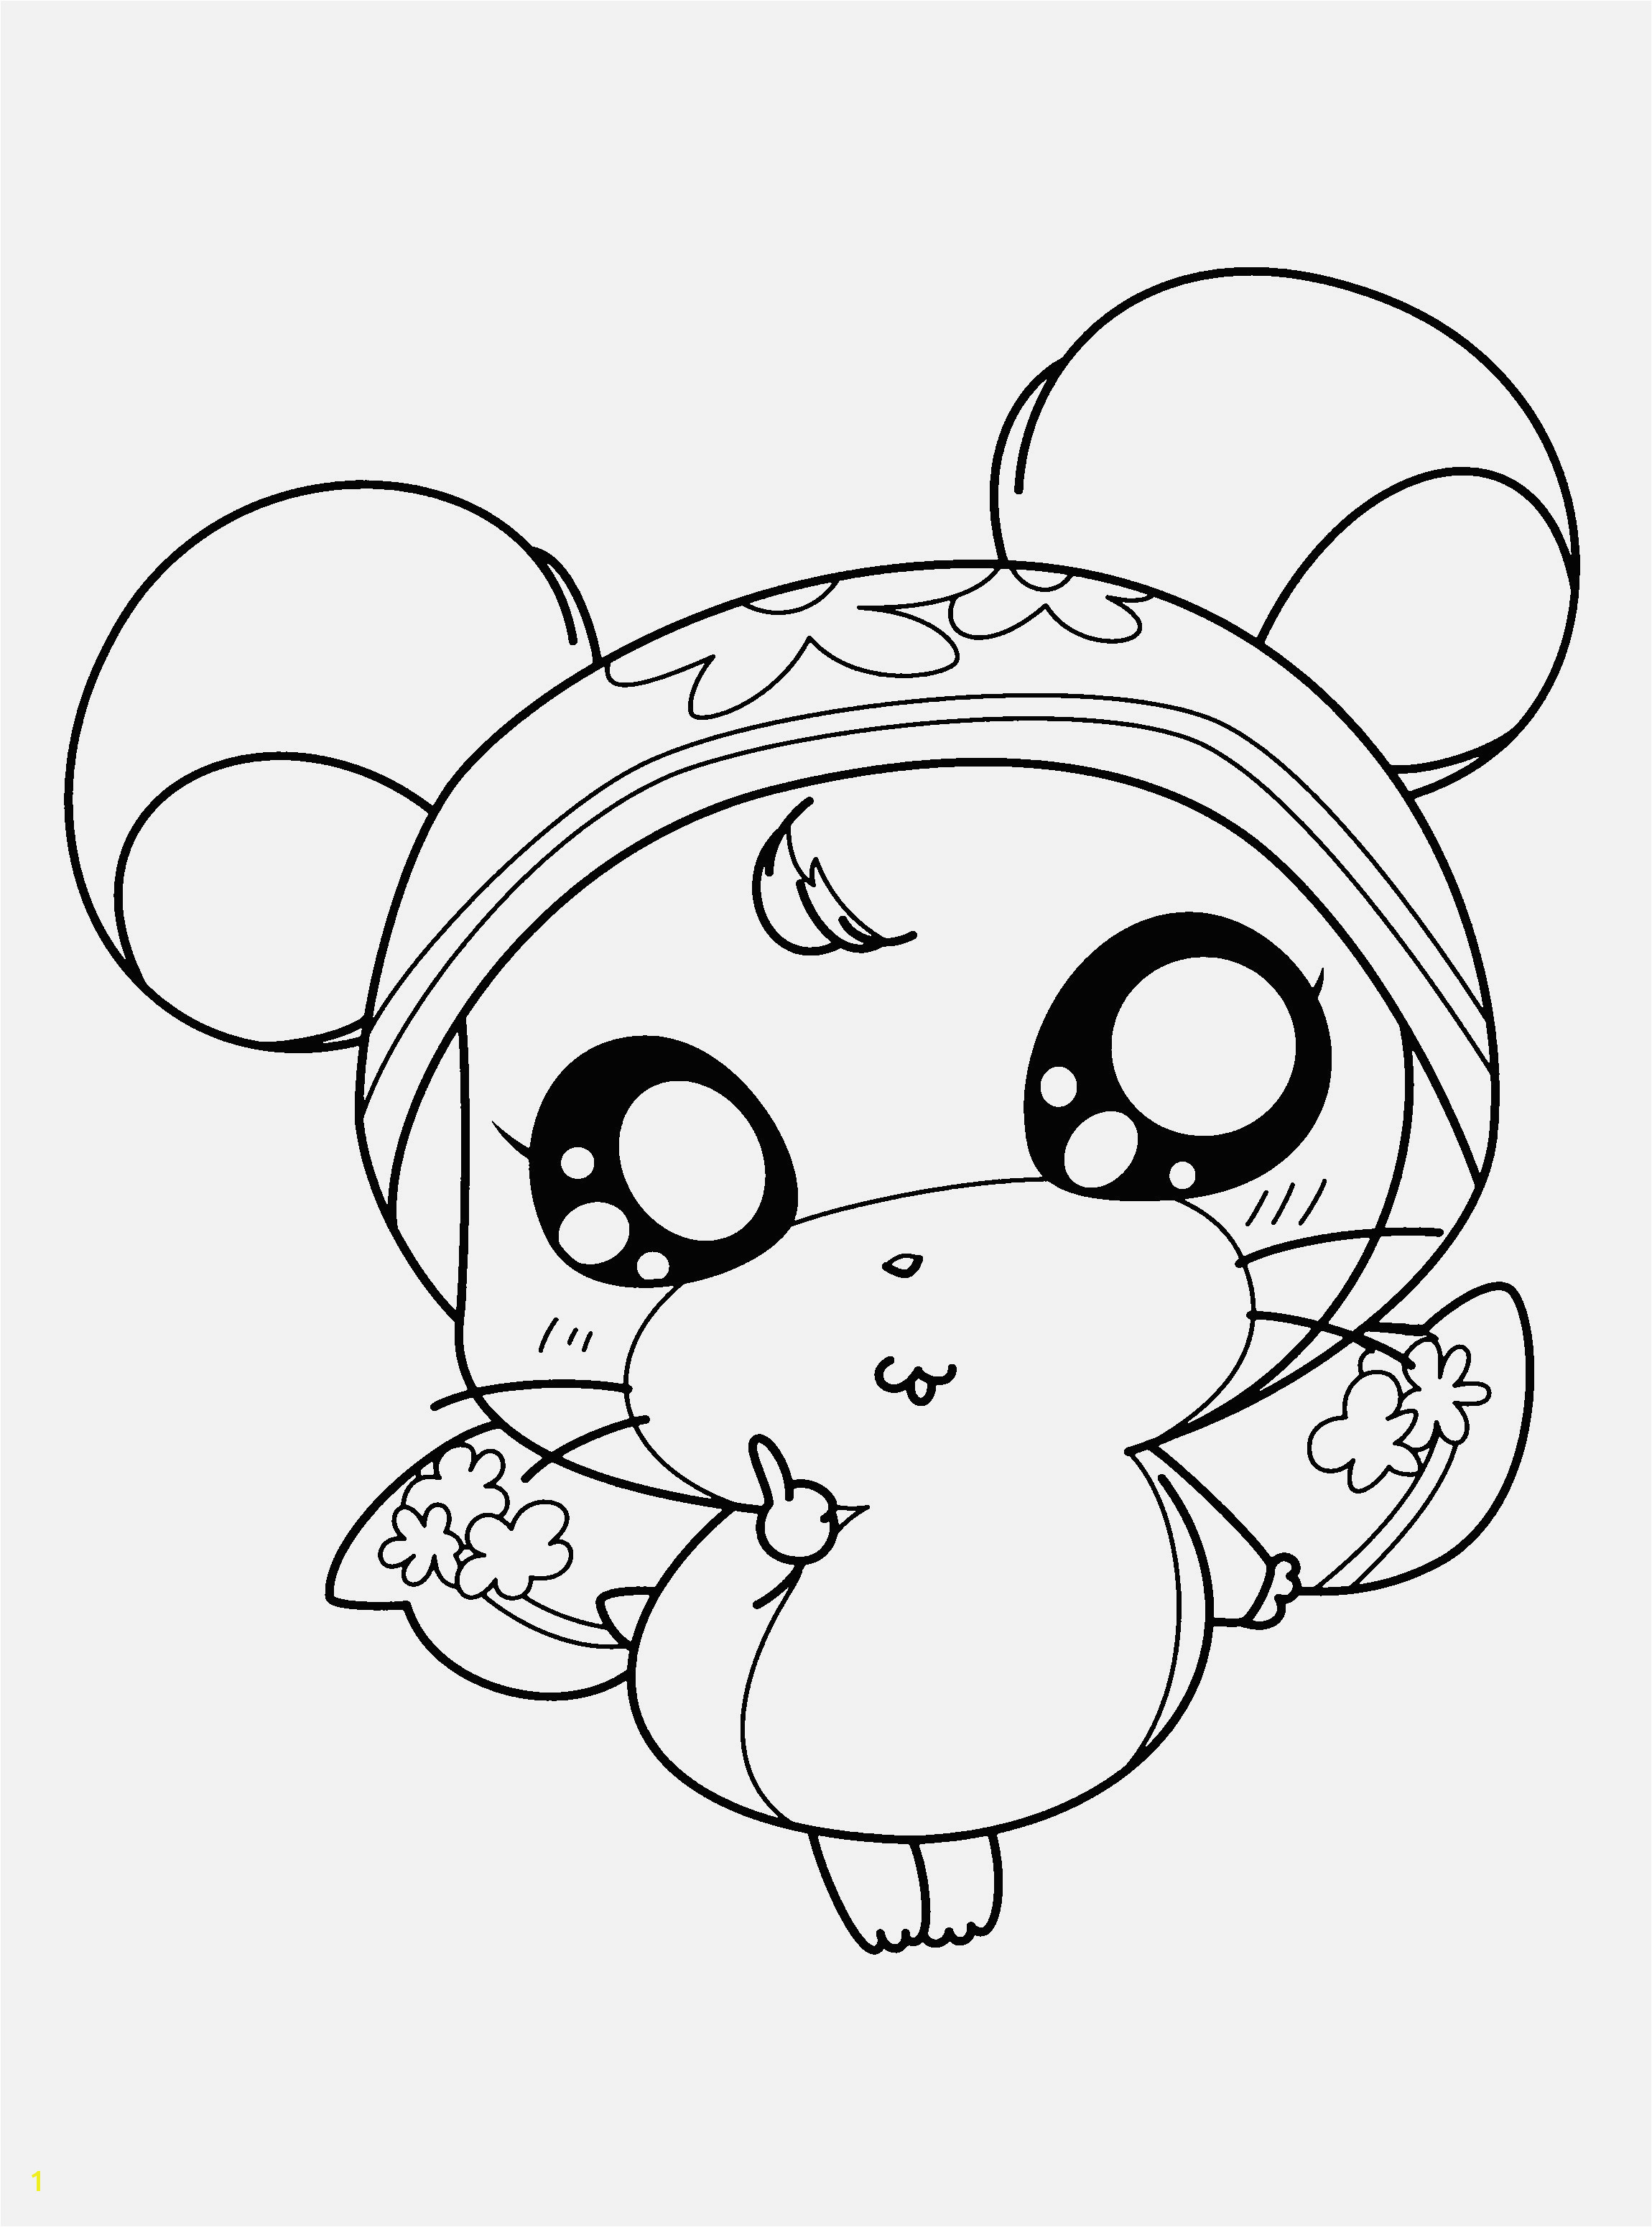 Care Bear Coloring Pages Printable Coloring Pages Bear Coloring Pages Lovely ¢‹†…¡